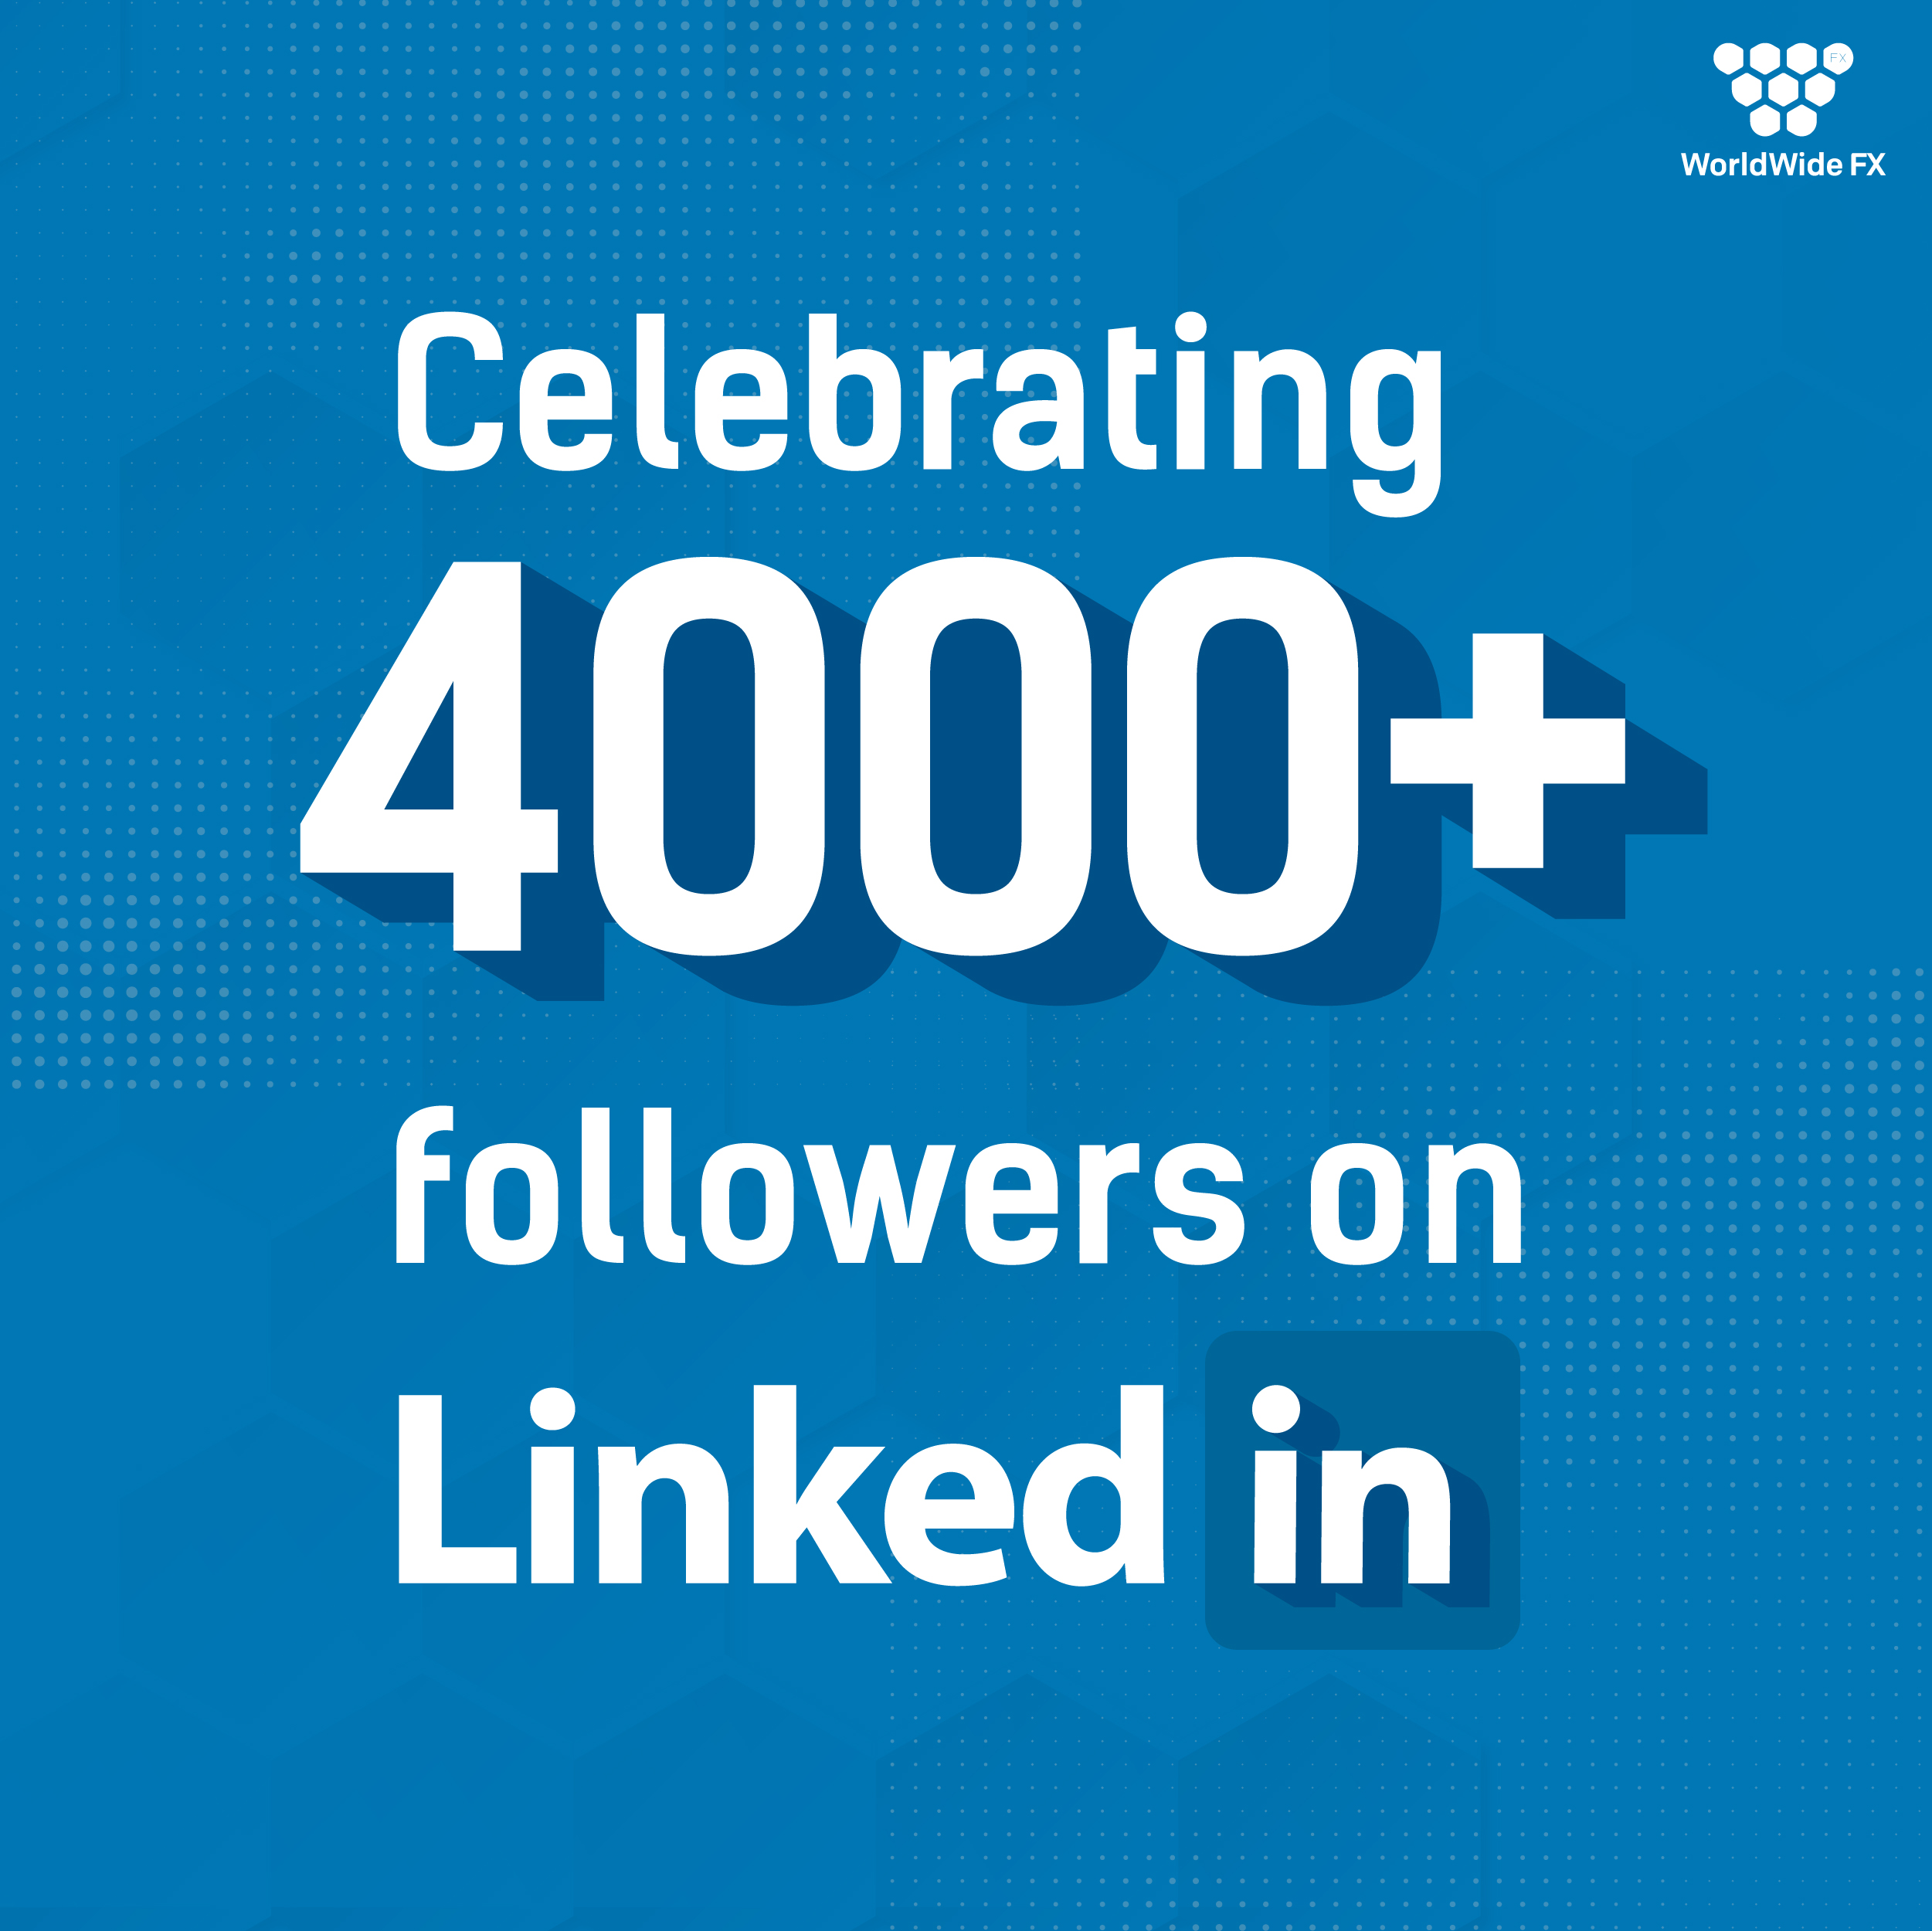 Thank You To All Of Our 4000+ Followers On LinkedIn